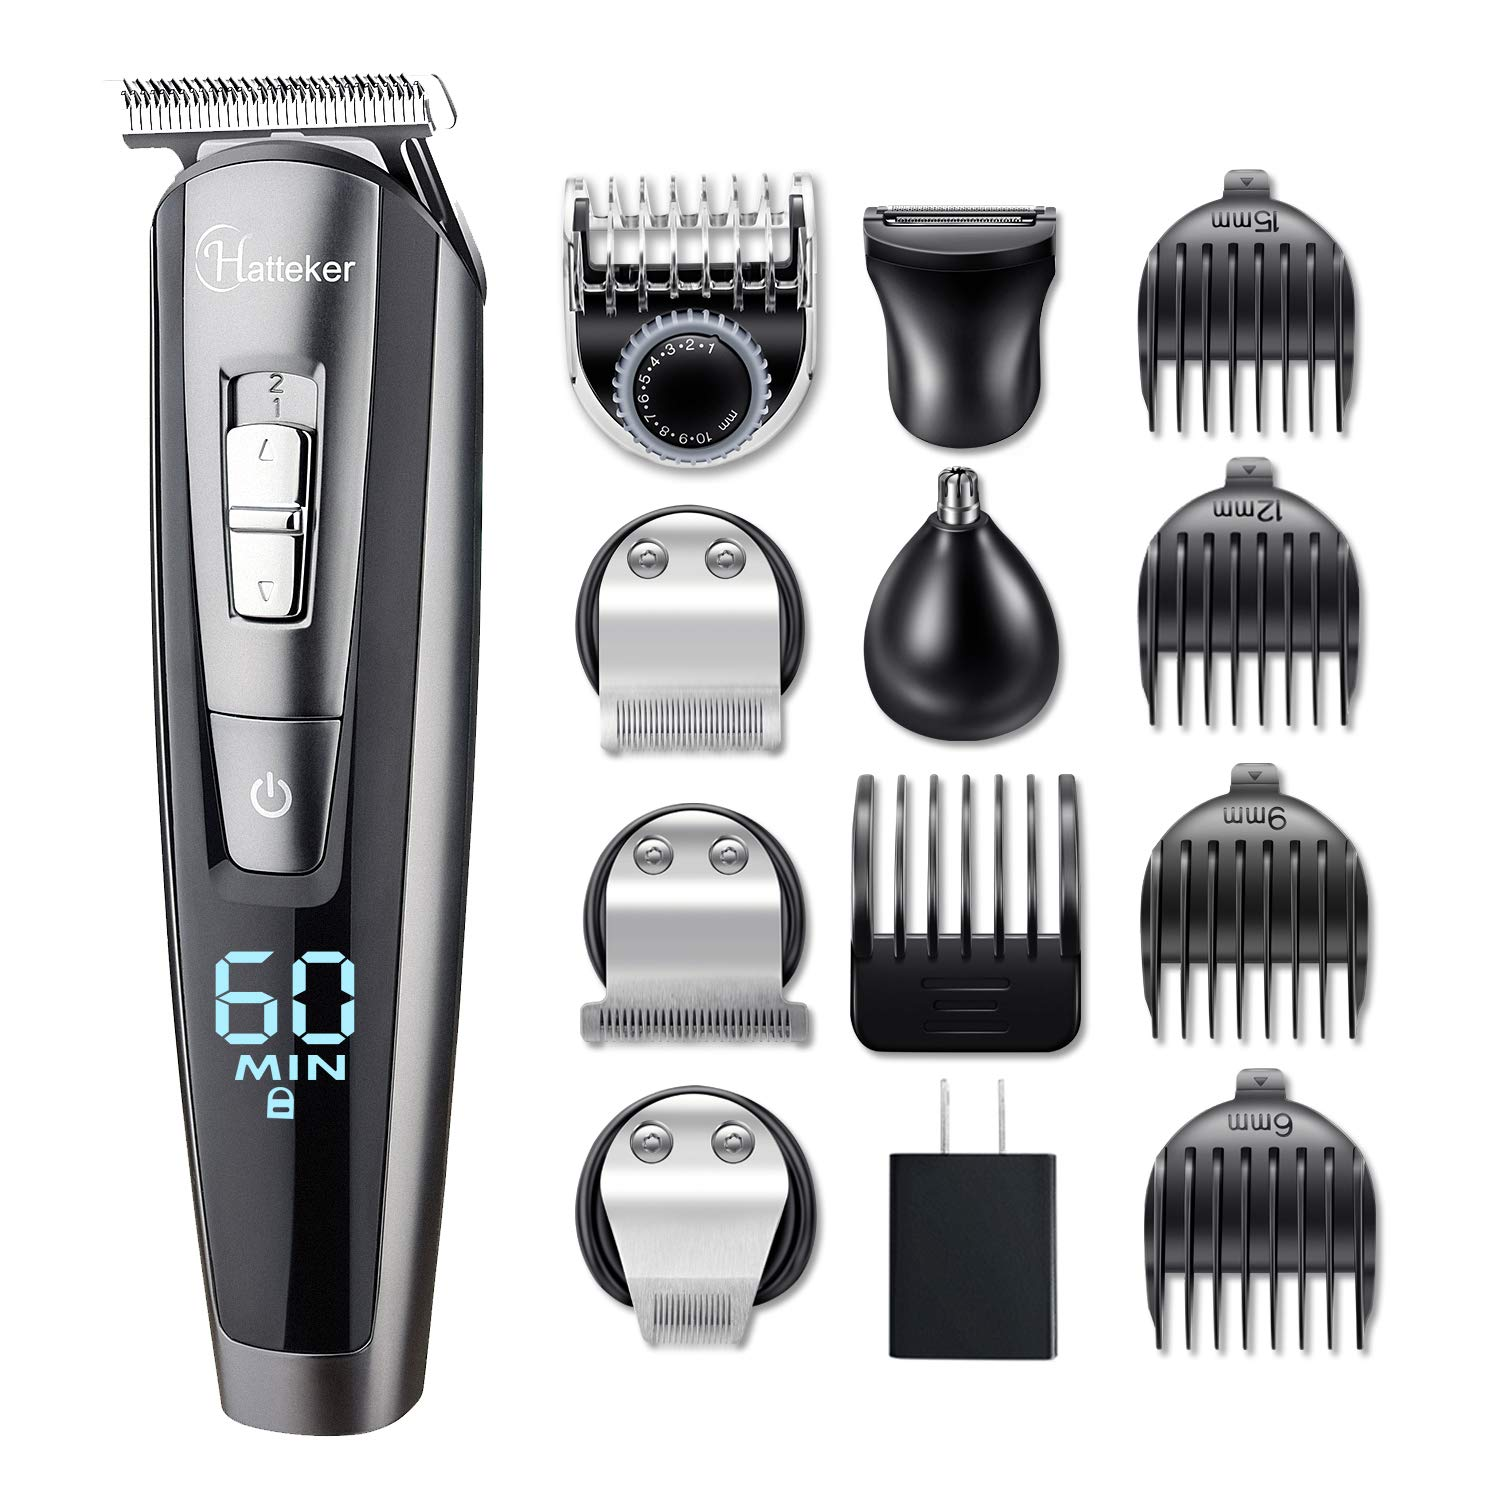 Cordless Men's Beard Trimmer Kit, 5 In 1 Waterproof Hair Trimmer & Groomer Kit